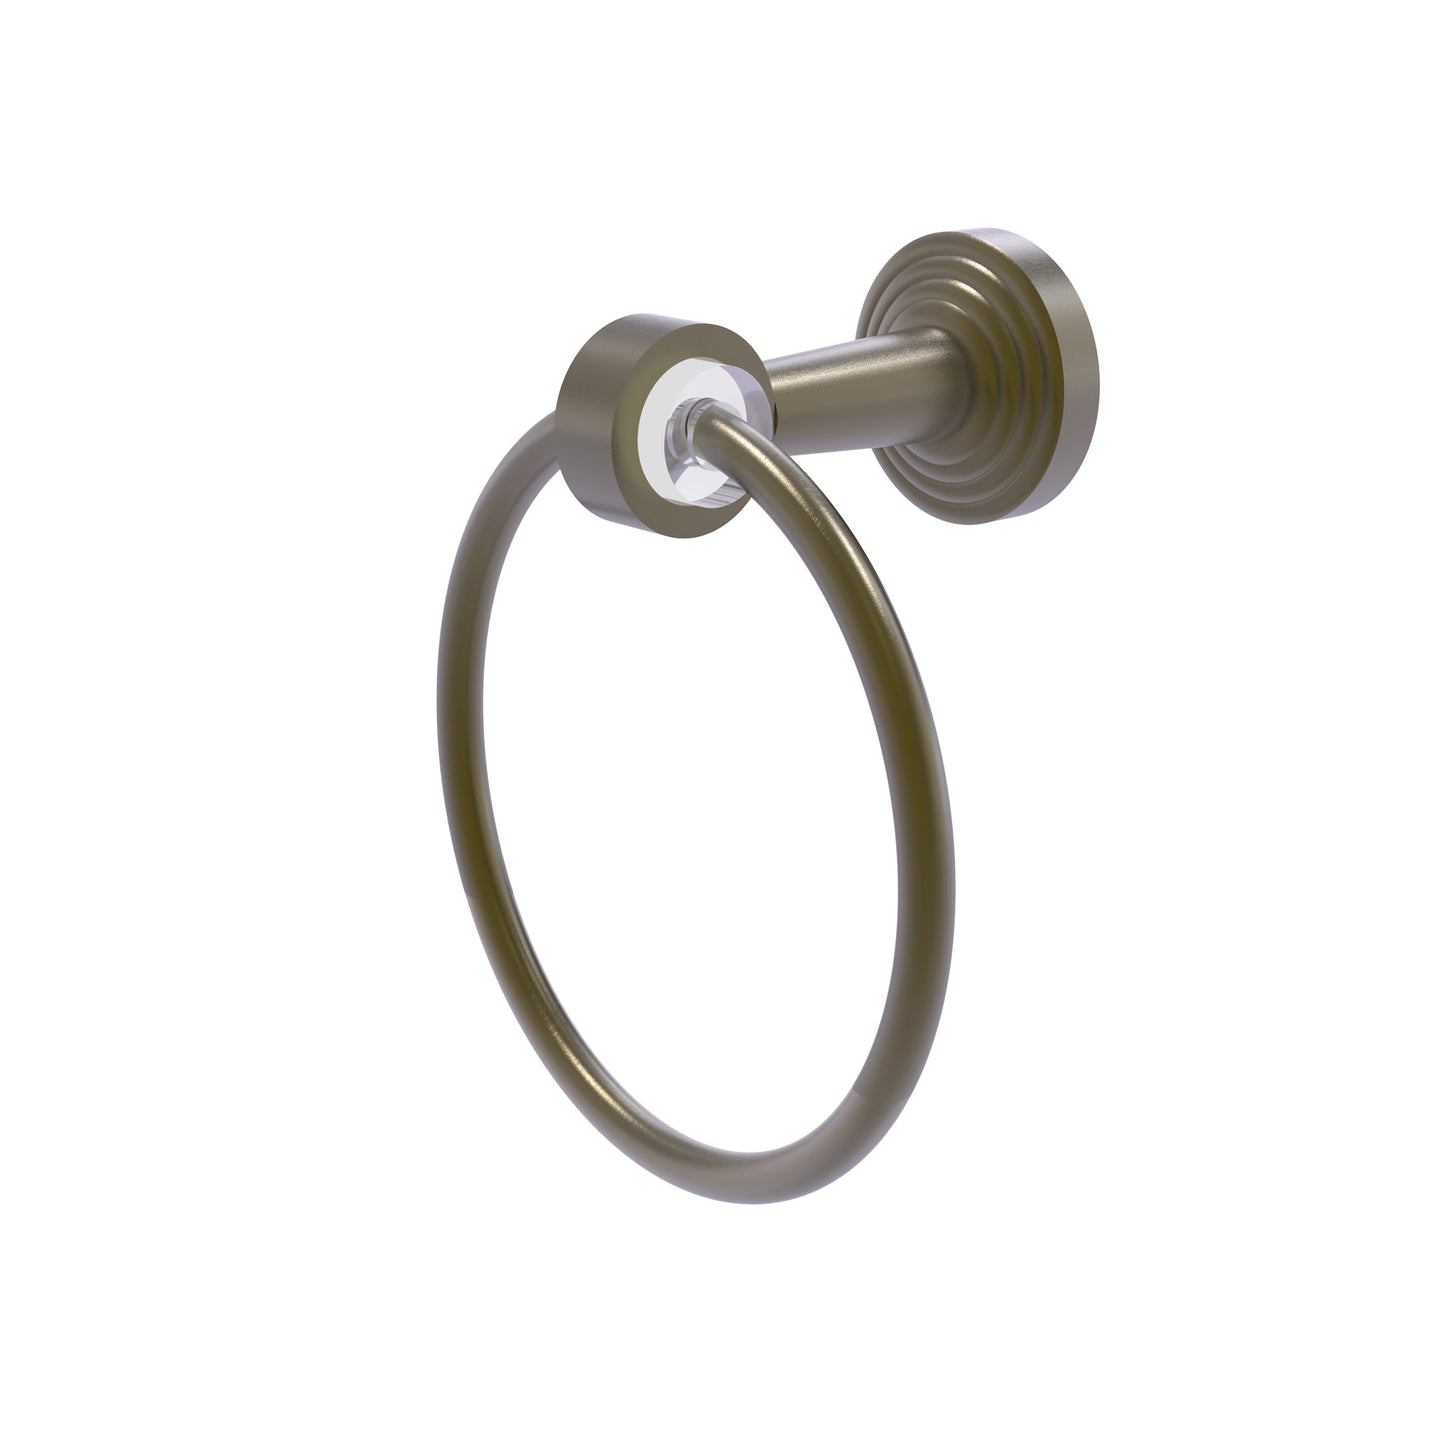 Allied Brass - Pacific Beach Collection Towel Ring